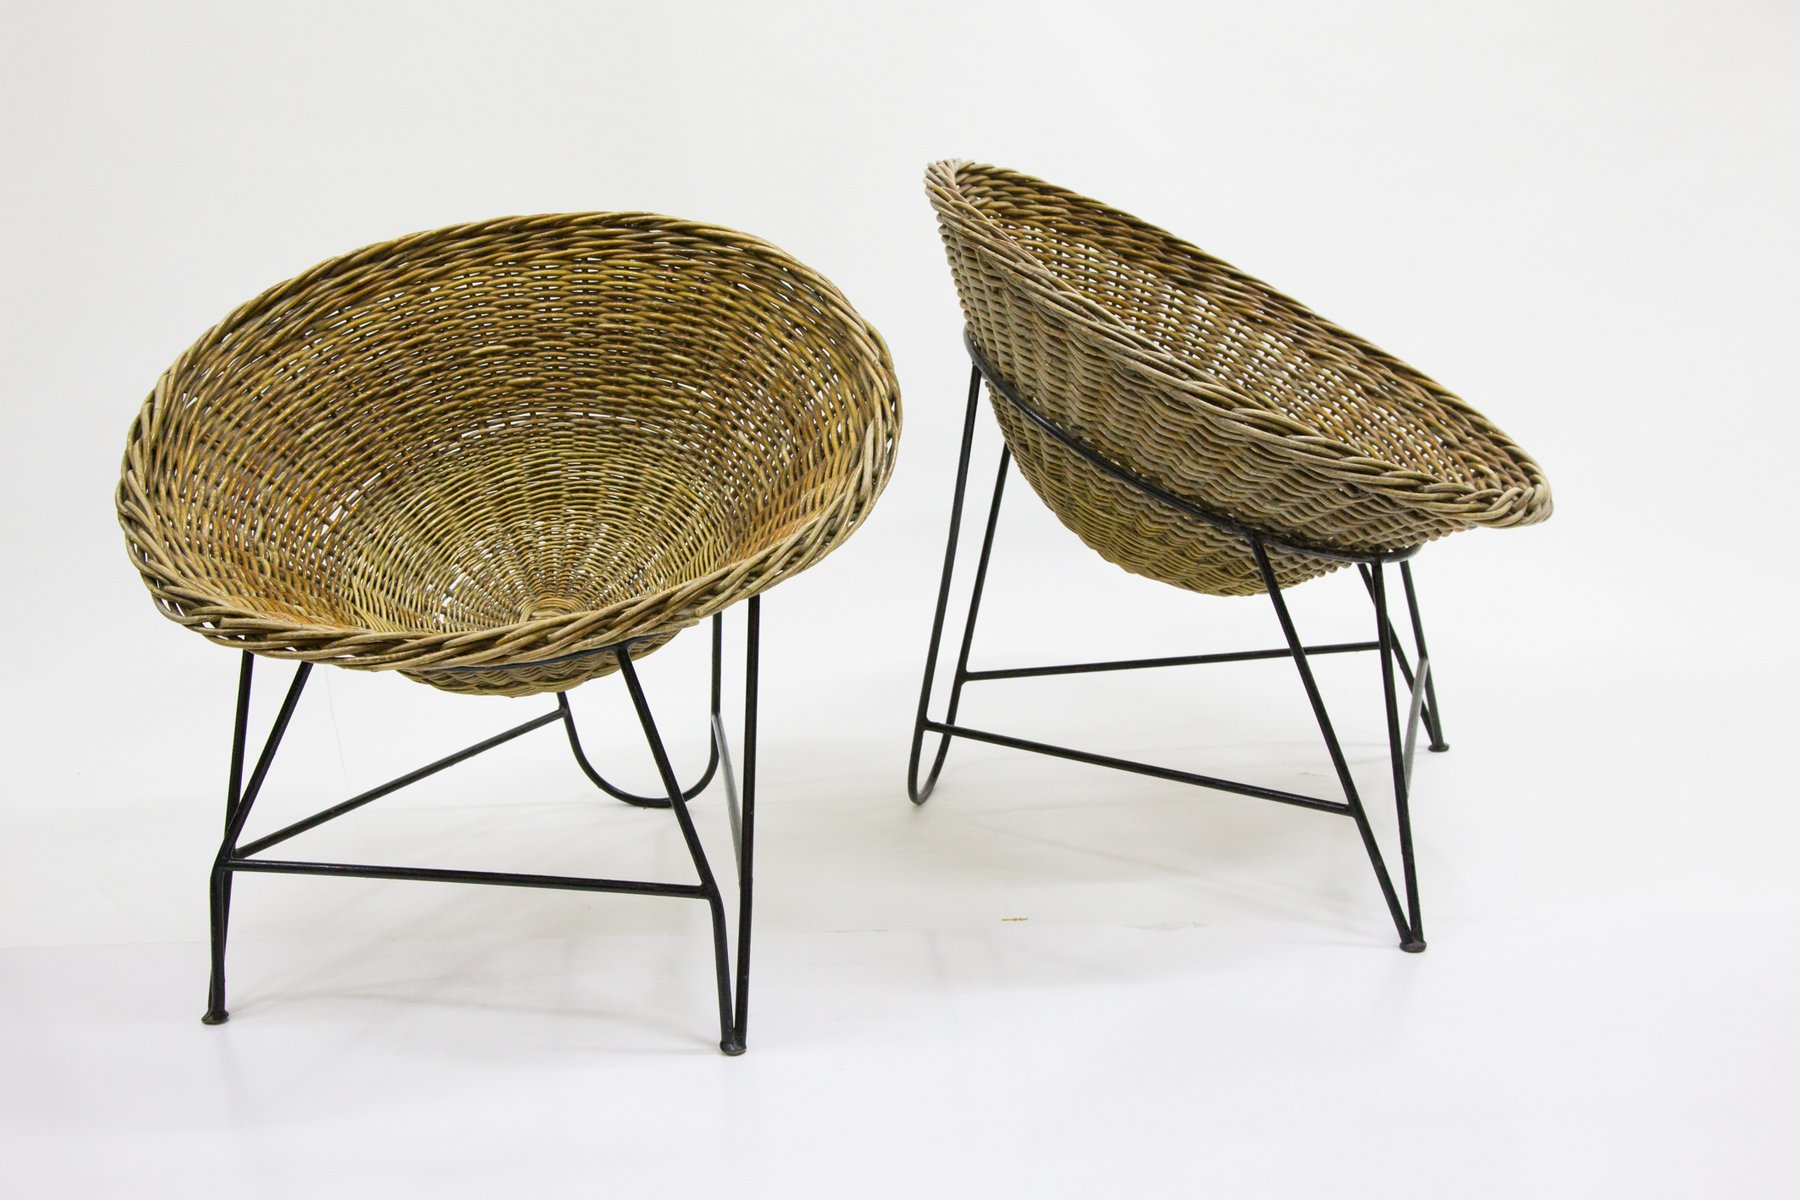 chair chairs peacock furniture wegner colors with rattan mesmerizing decorating beautiful black